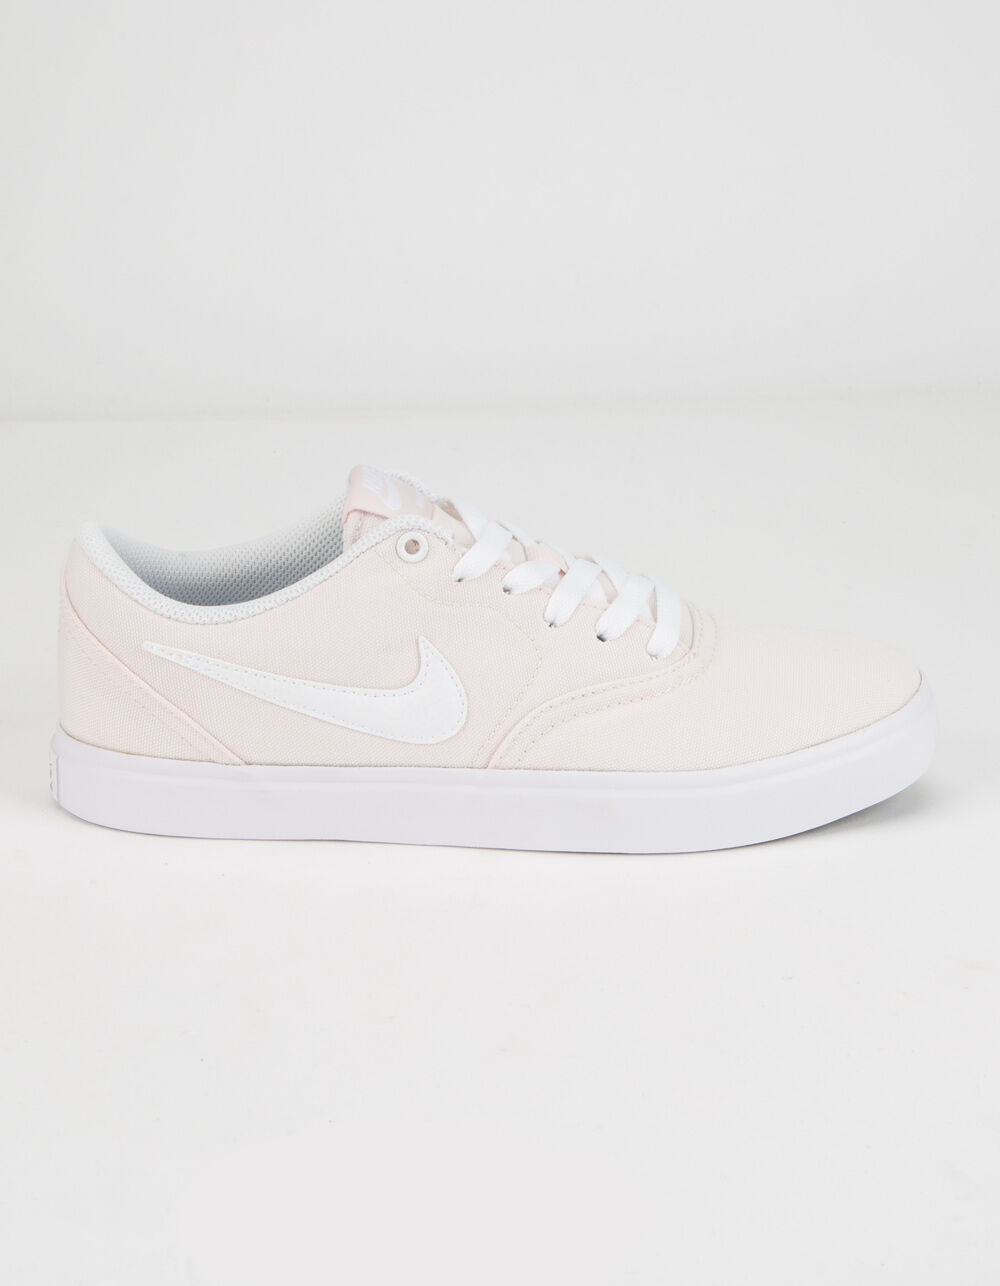 NIKE SB Check Solar Canvas Light Soft Pink & White Shoes